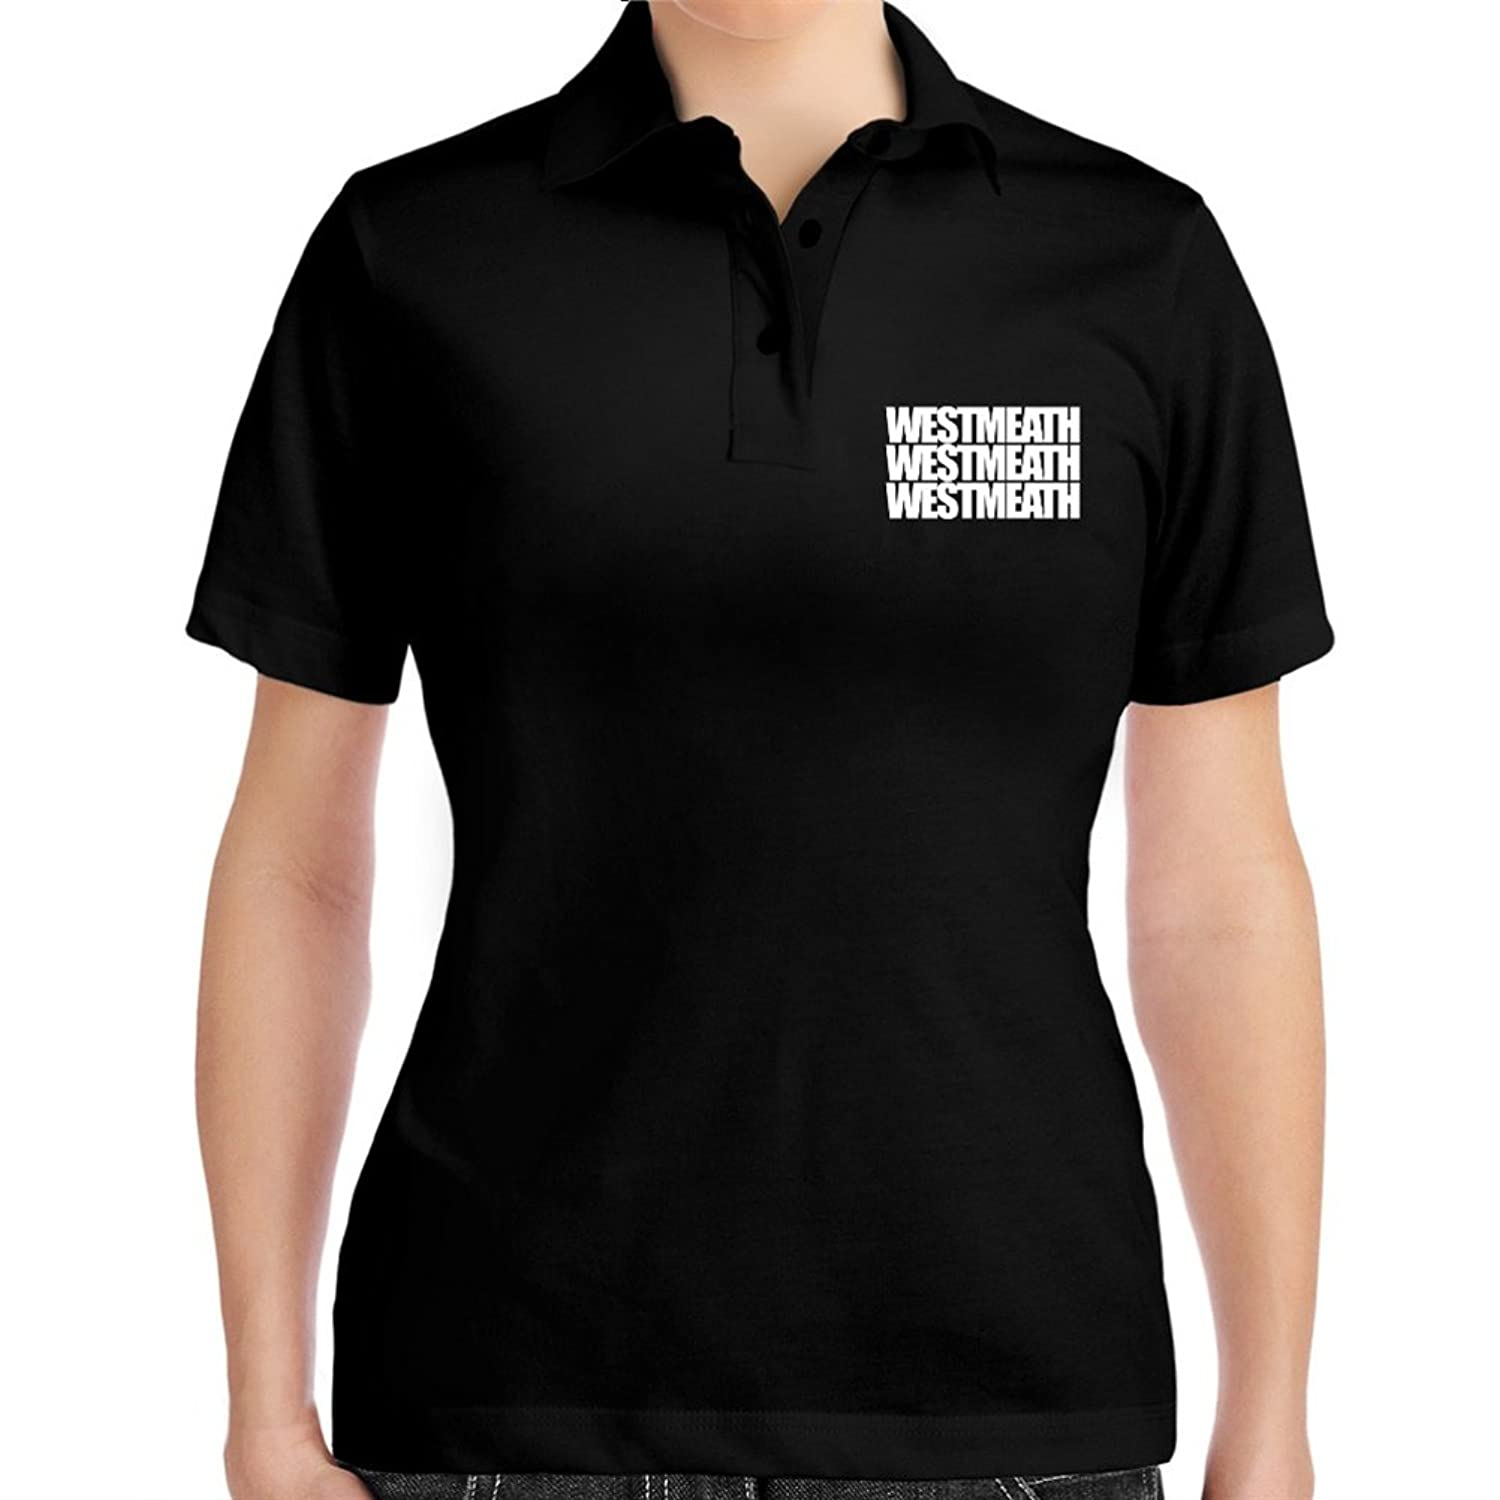 Westmeath three words Women Polo Shirt